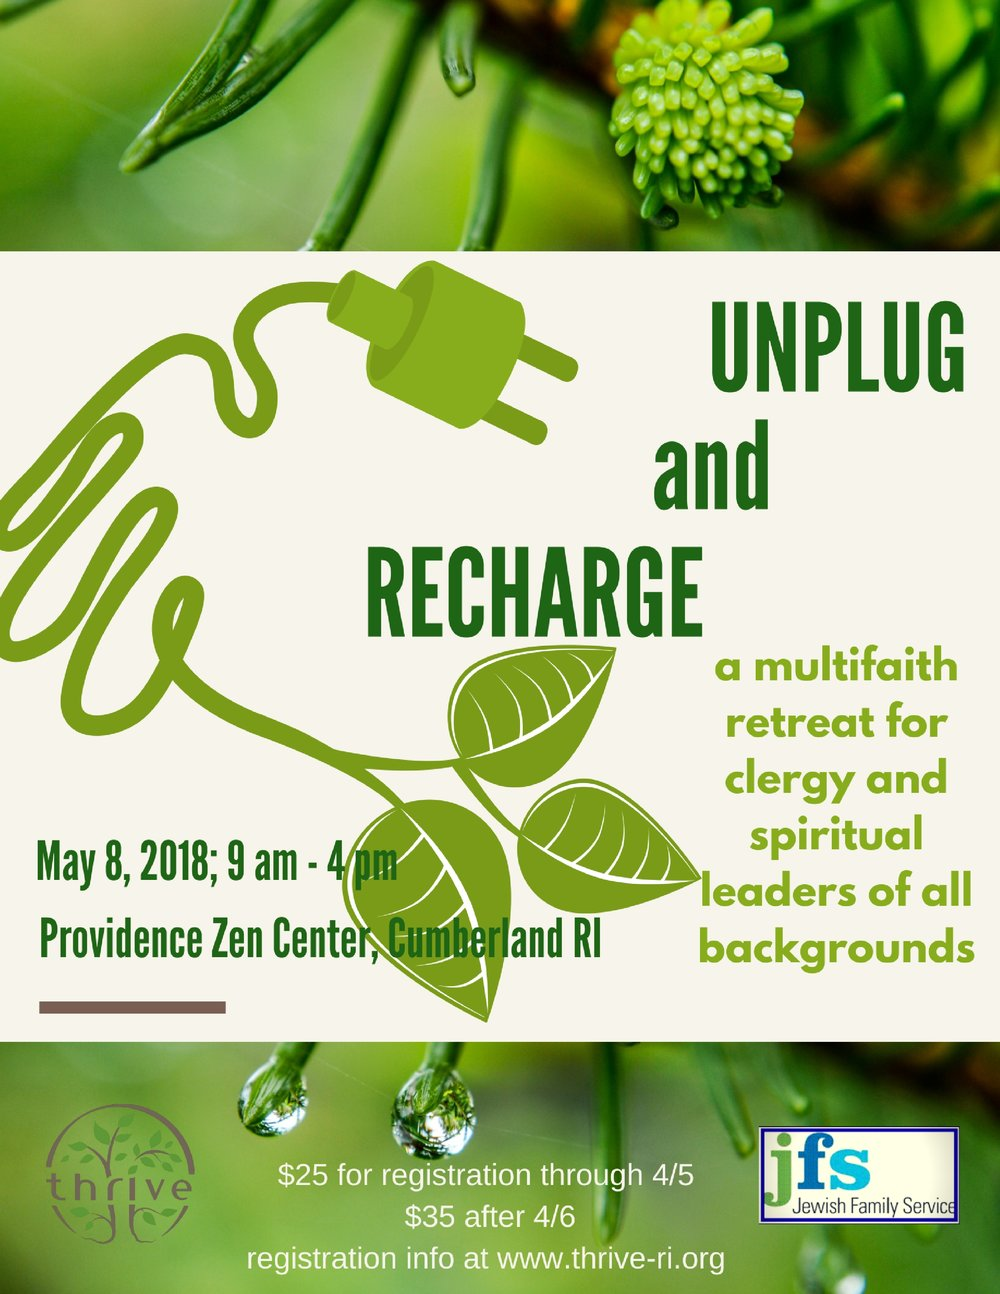 Unplug and Recharge final.jpg